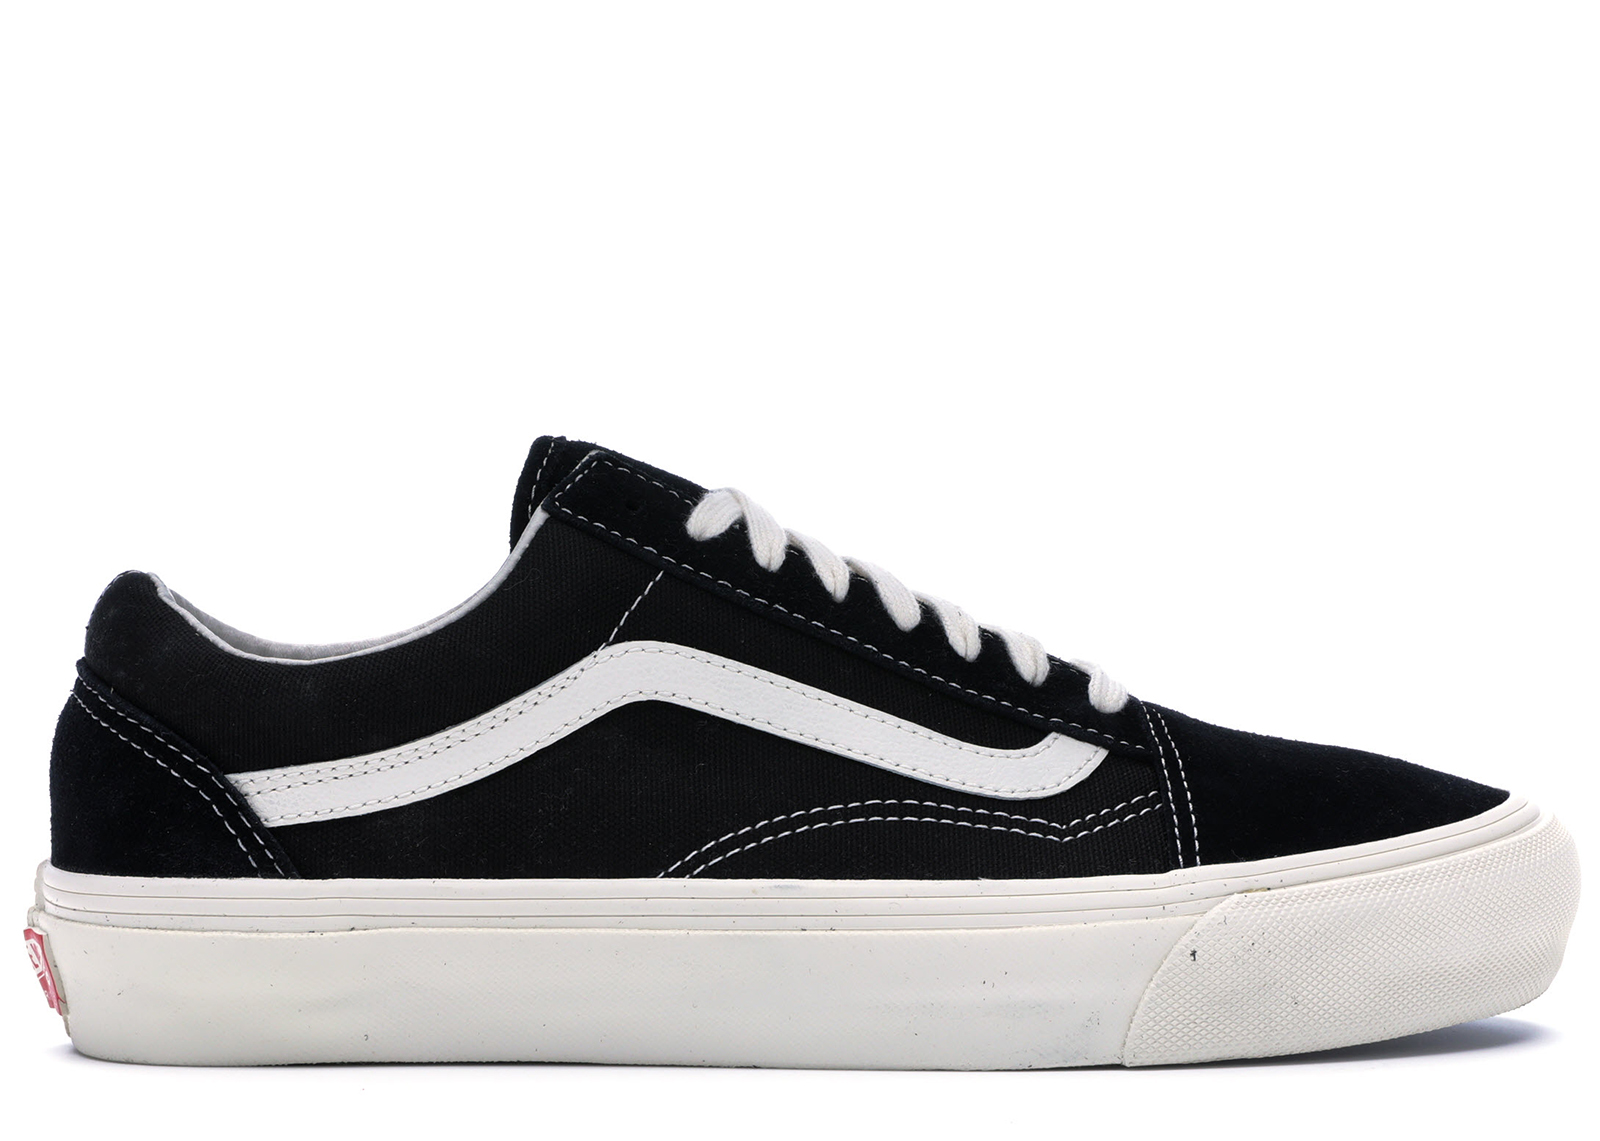 Vans Old Skool LX Black Canvas